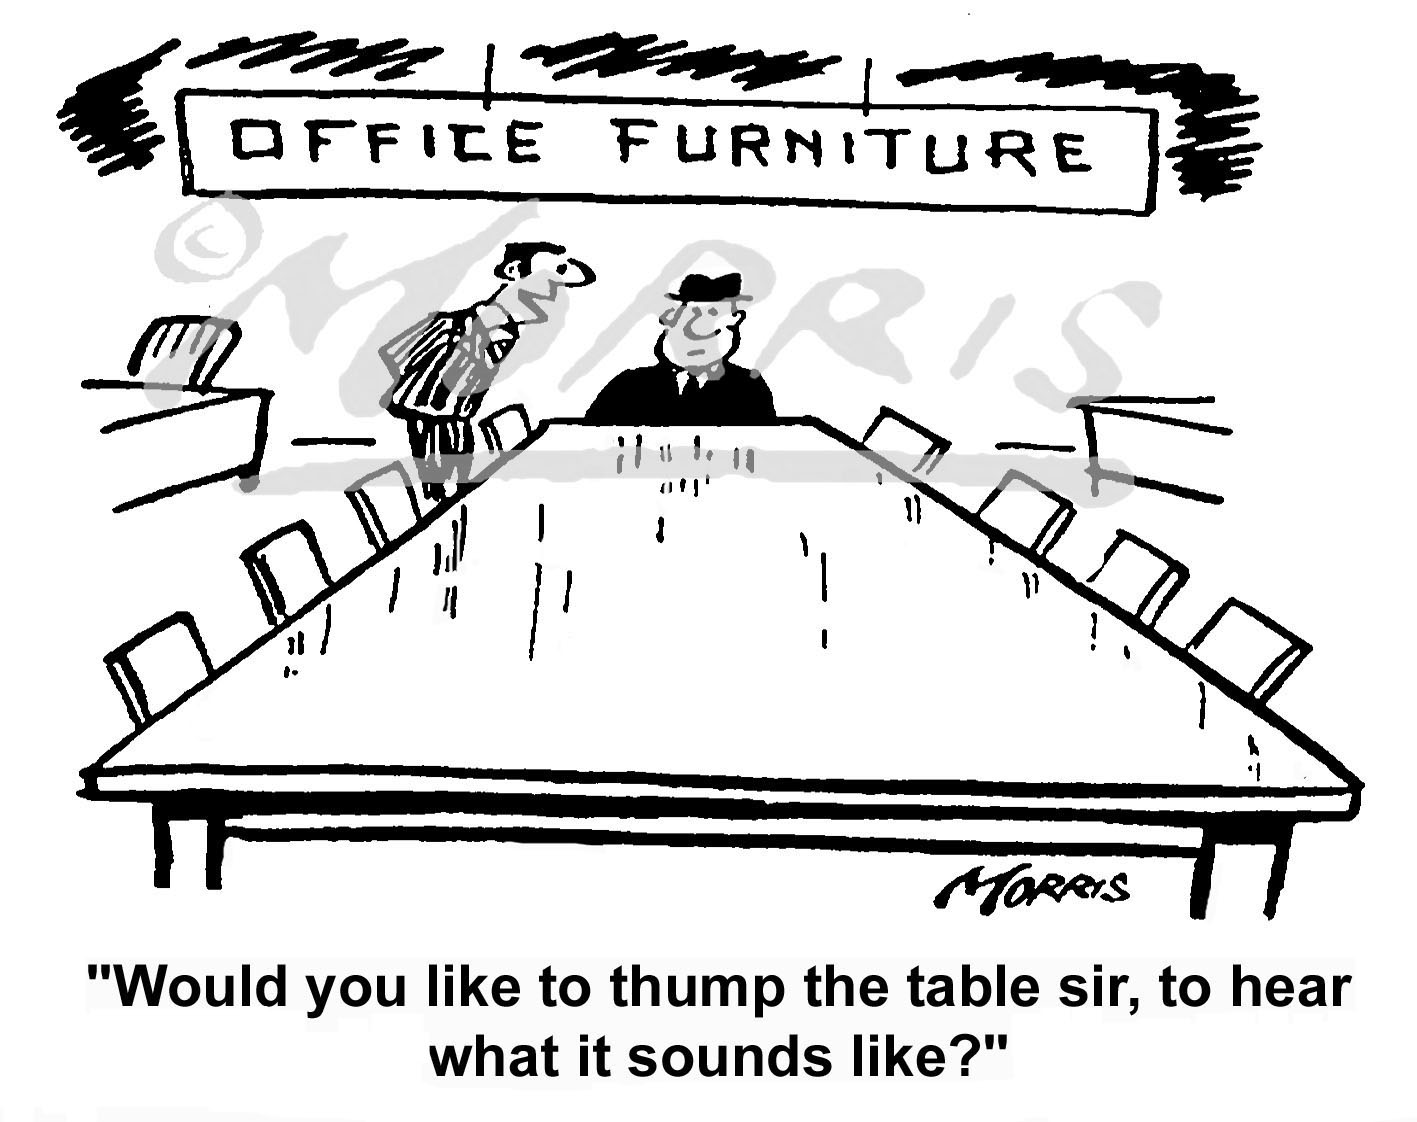 Office furniture cartoon Ref: 0432bw